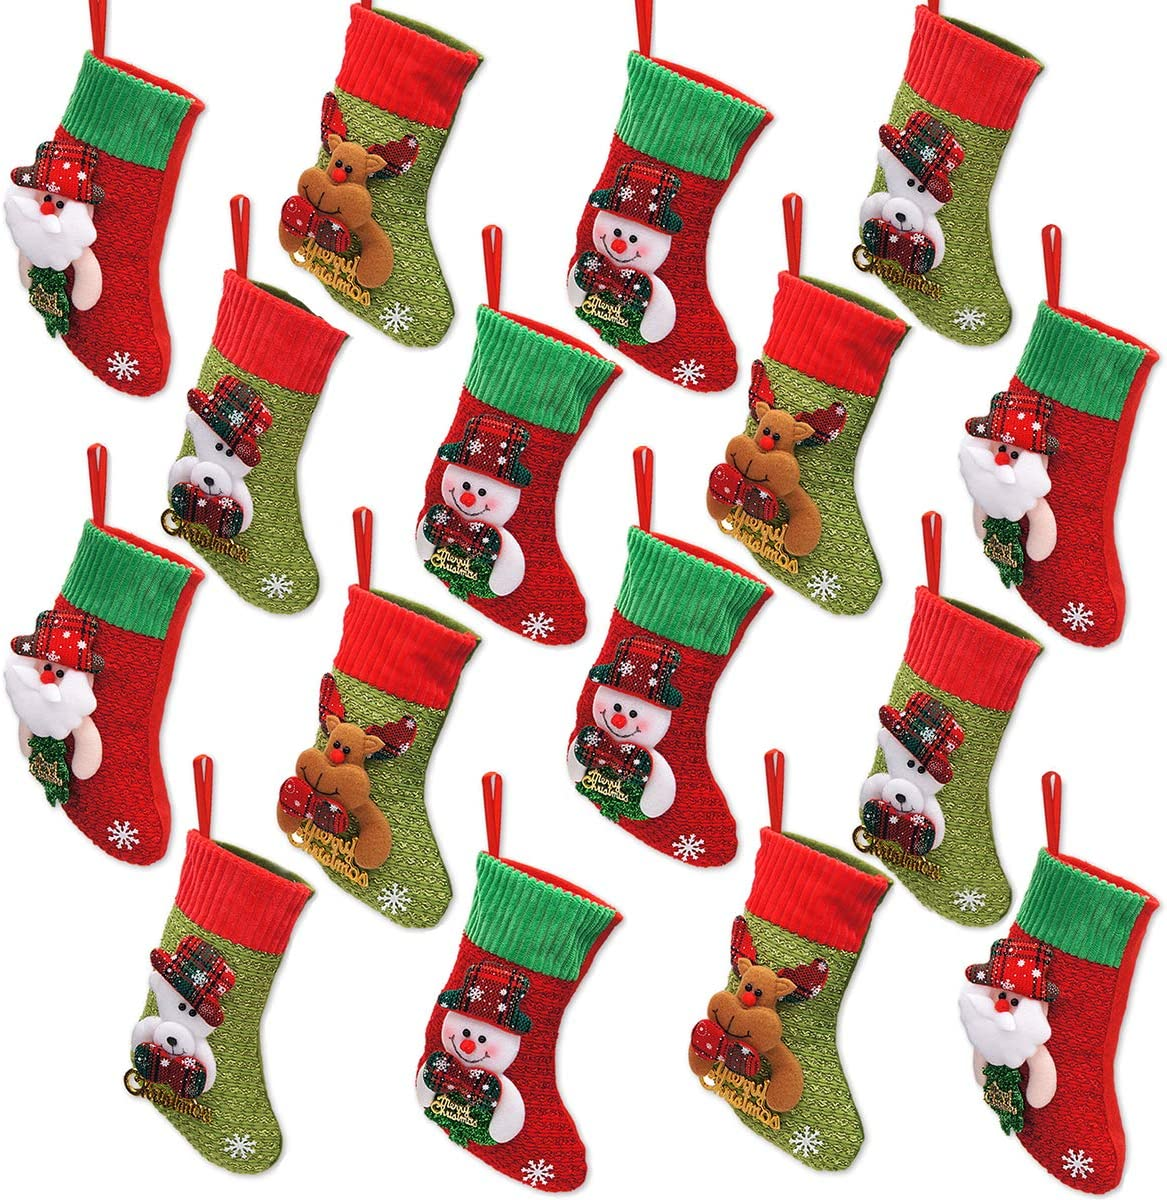 Limbridge Mini Christmas Stockings 16 Pack 8 Inches 3d Kids Glitter Xmas Tree Santa Claus Snowman Reindeer Gift Card Silverware Holders Small Personalized Holiday Treat Bags Home Kitchen